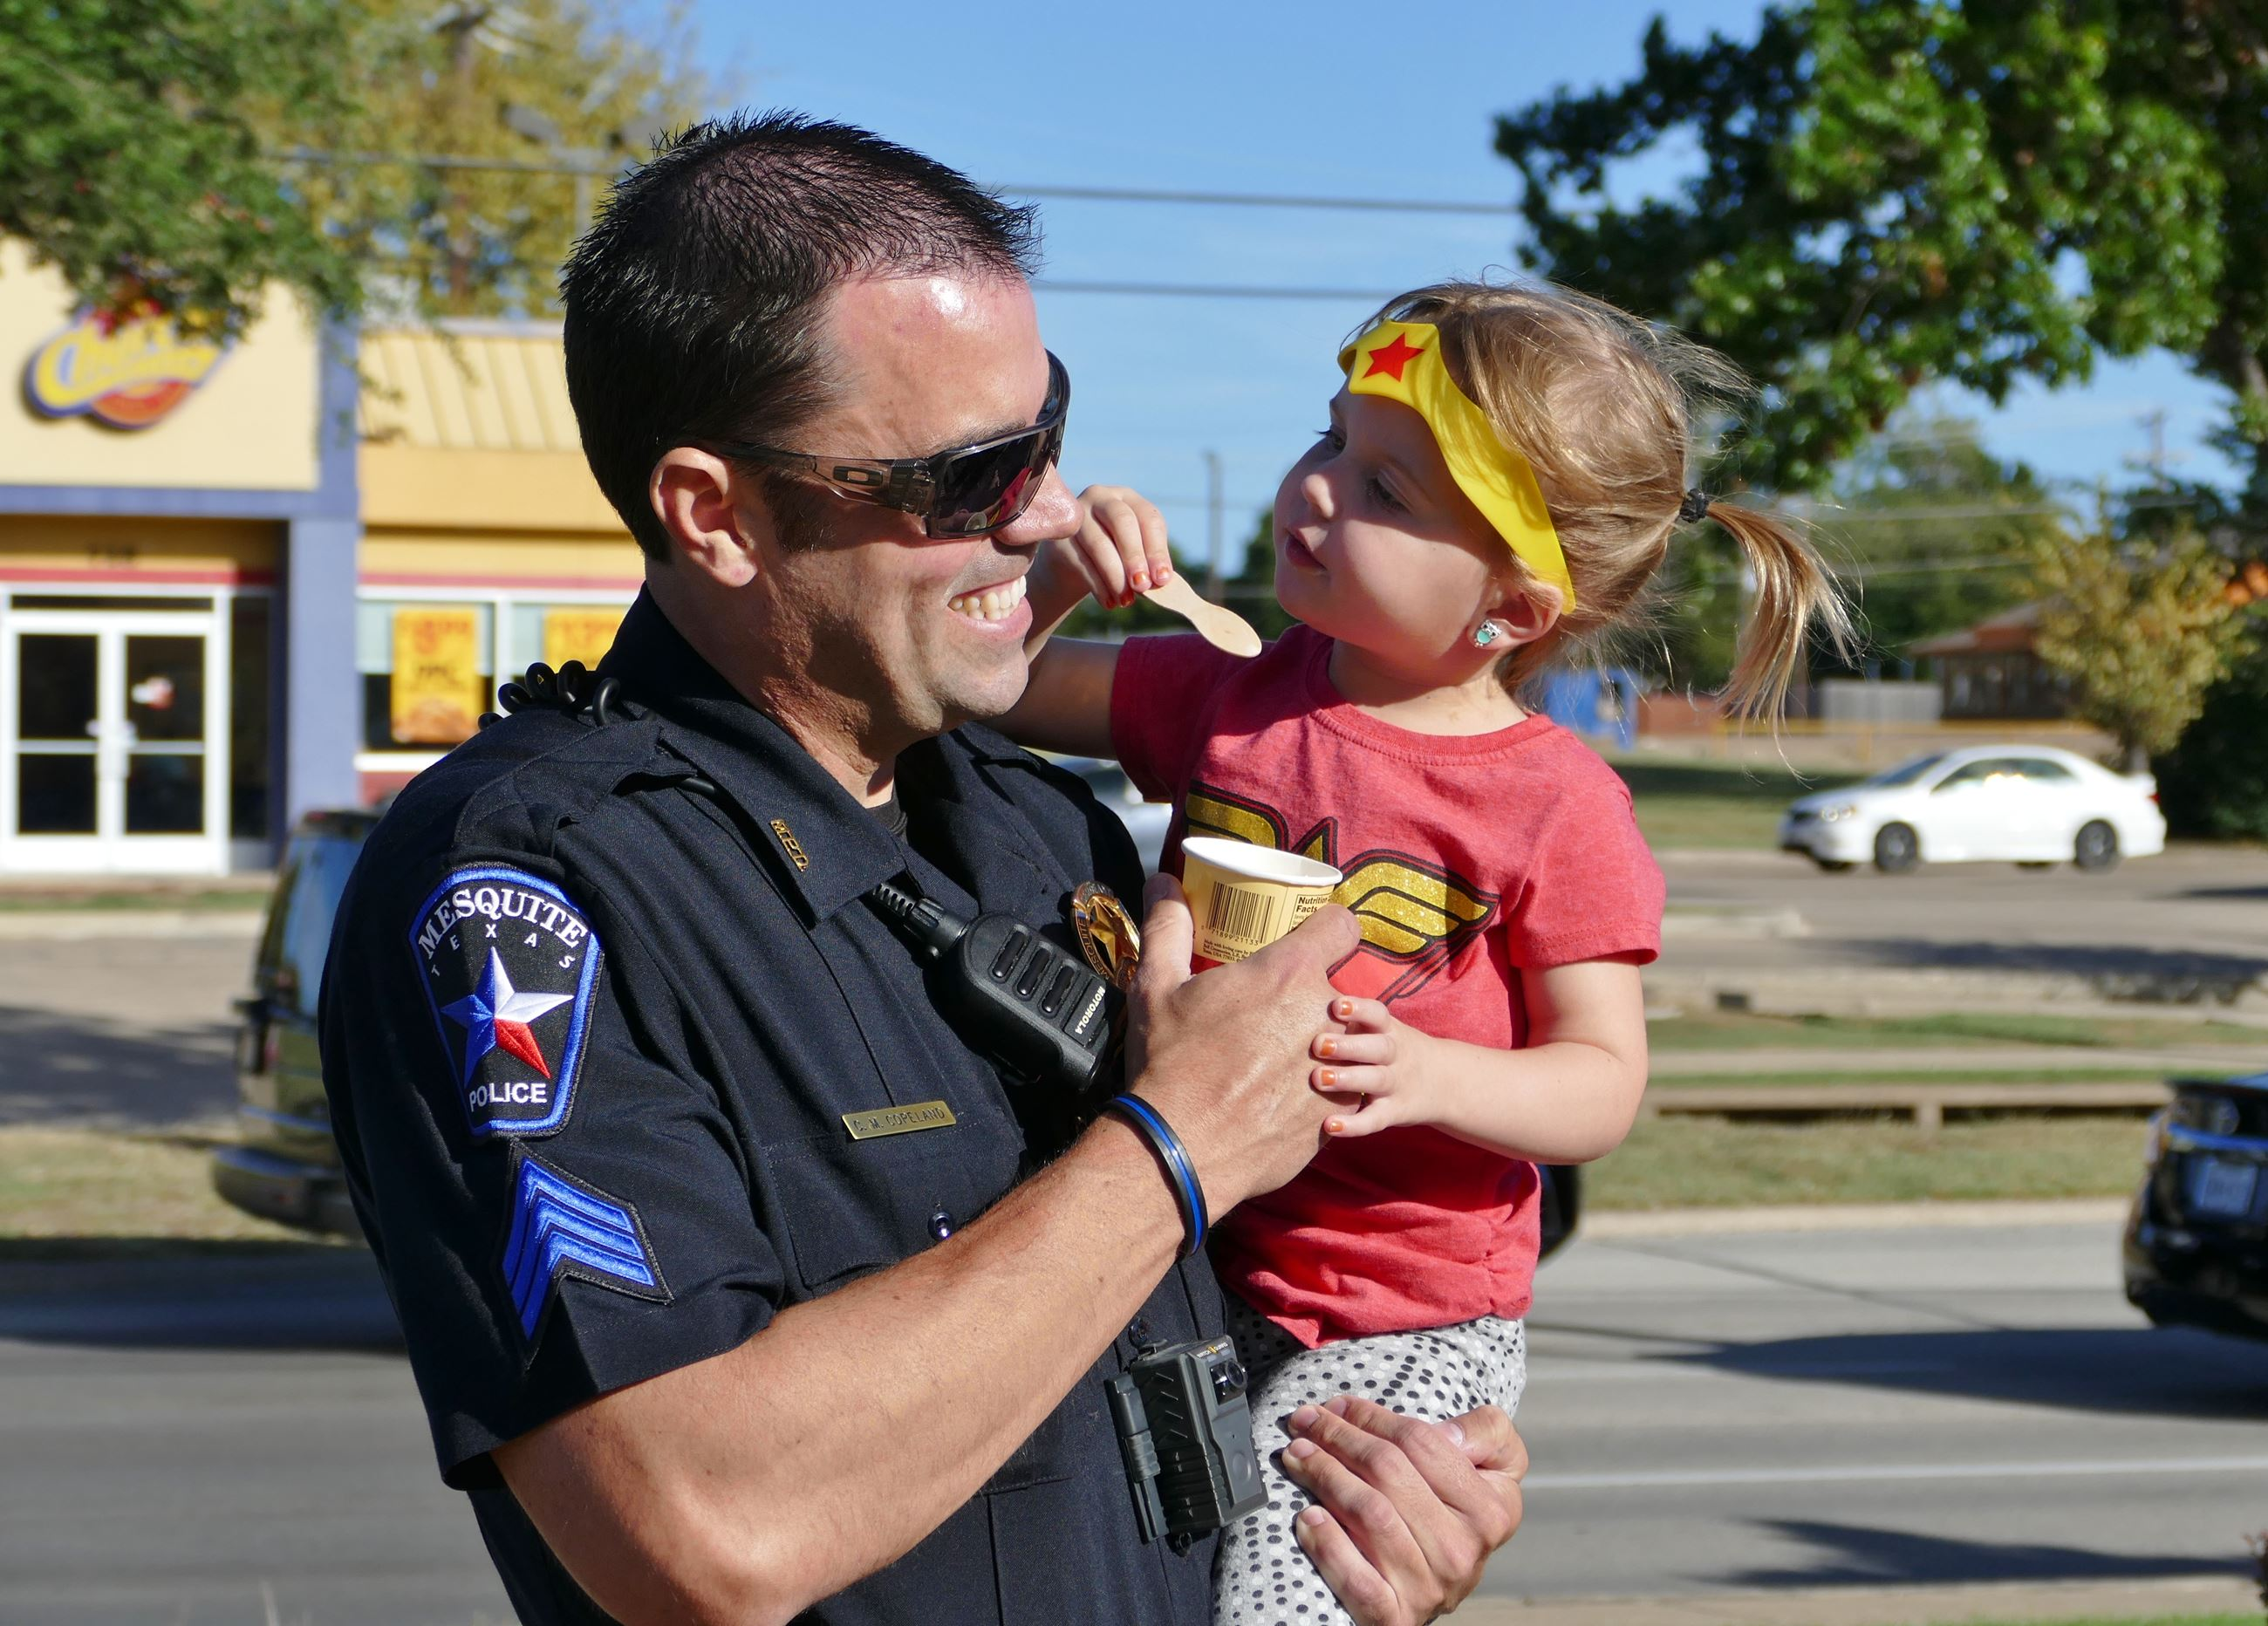 Officer and daughter